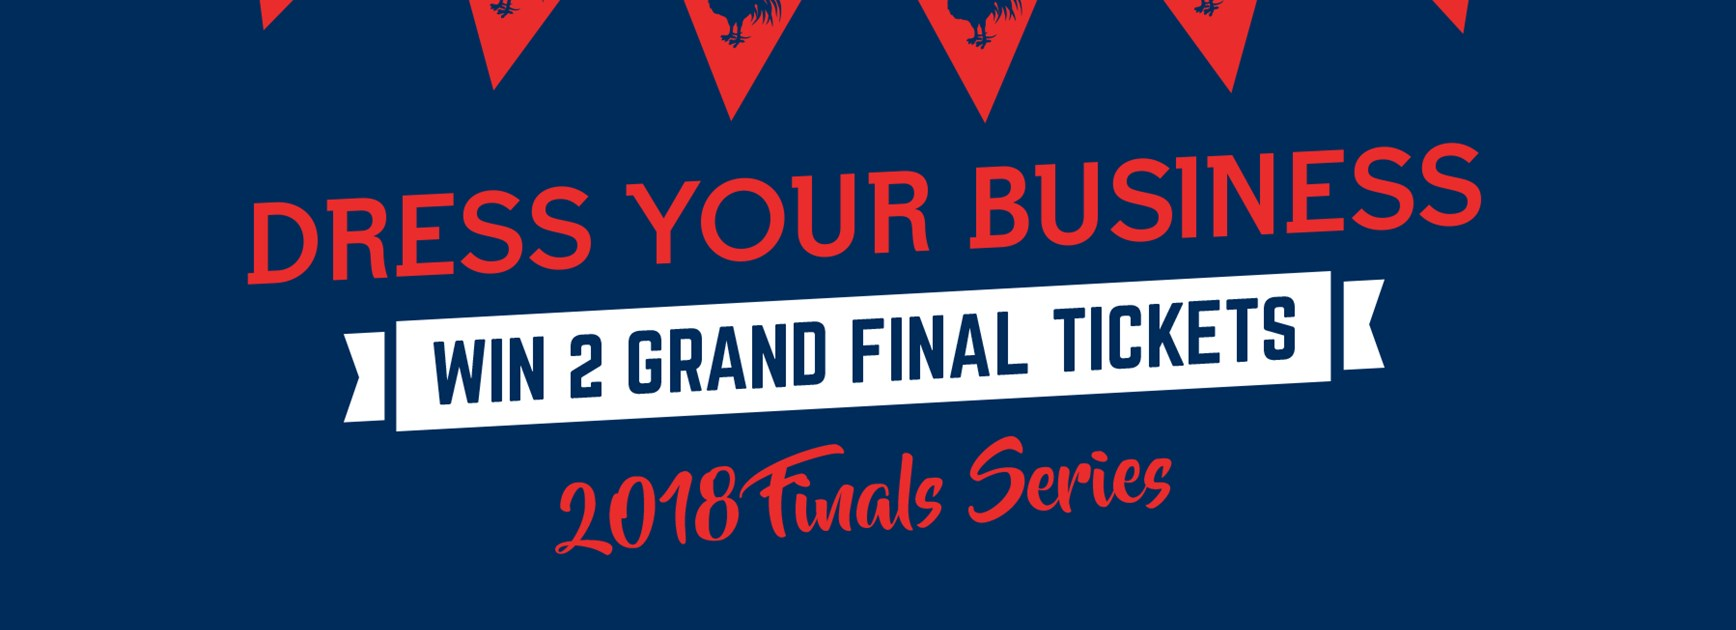 Dress Your Business For Grand Final